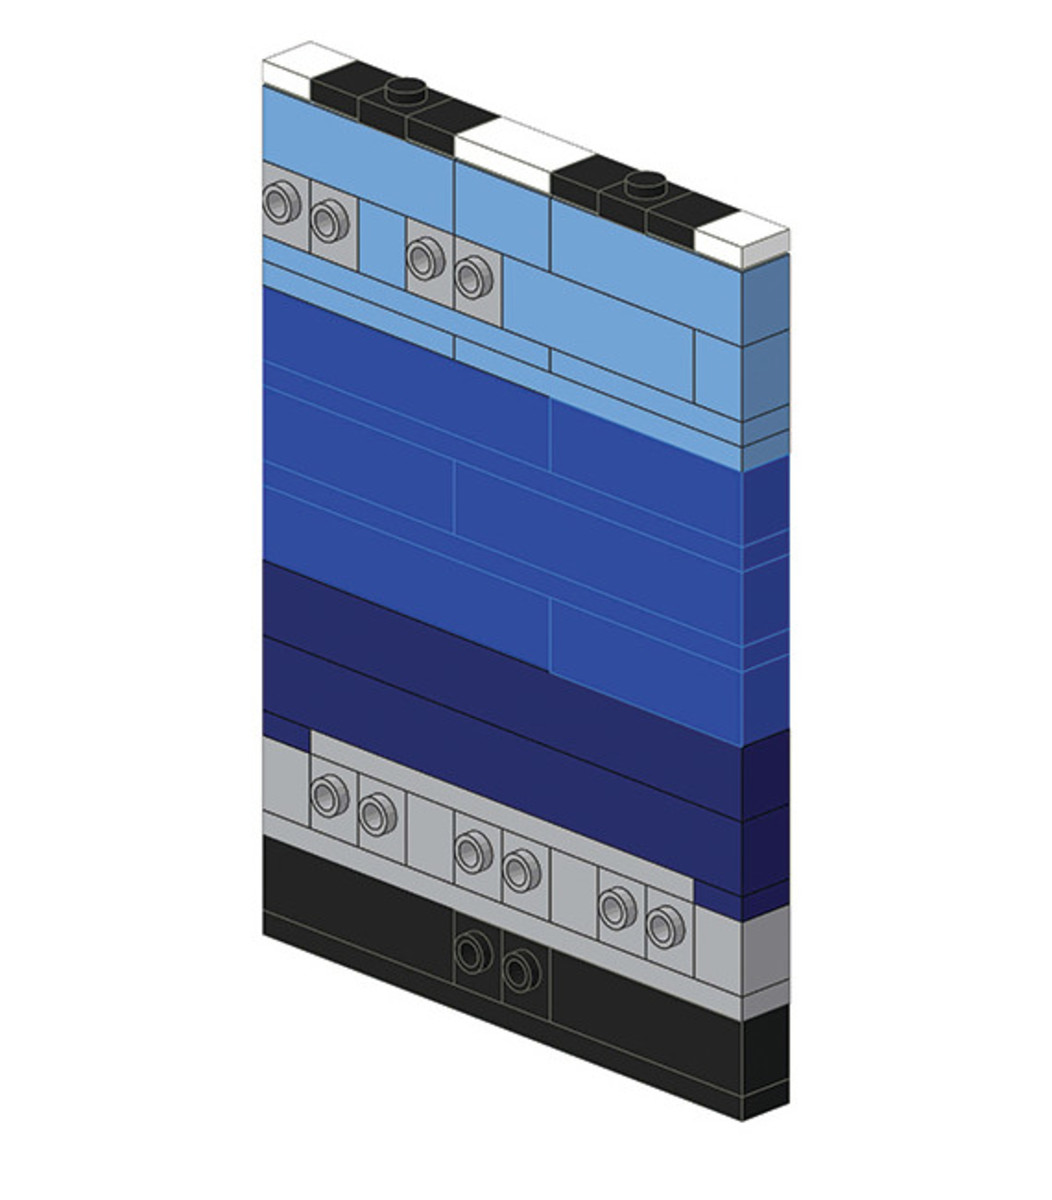 how-to-build-an-ipad-out-of-lego-11